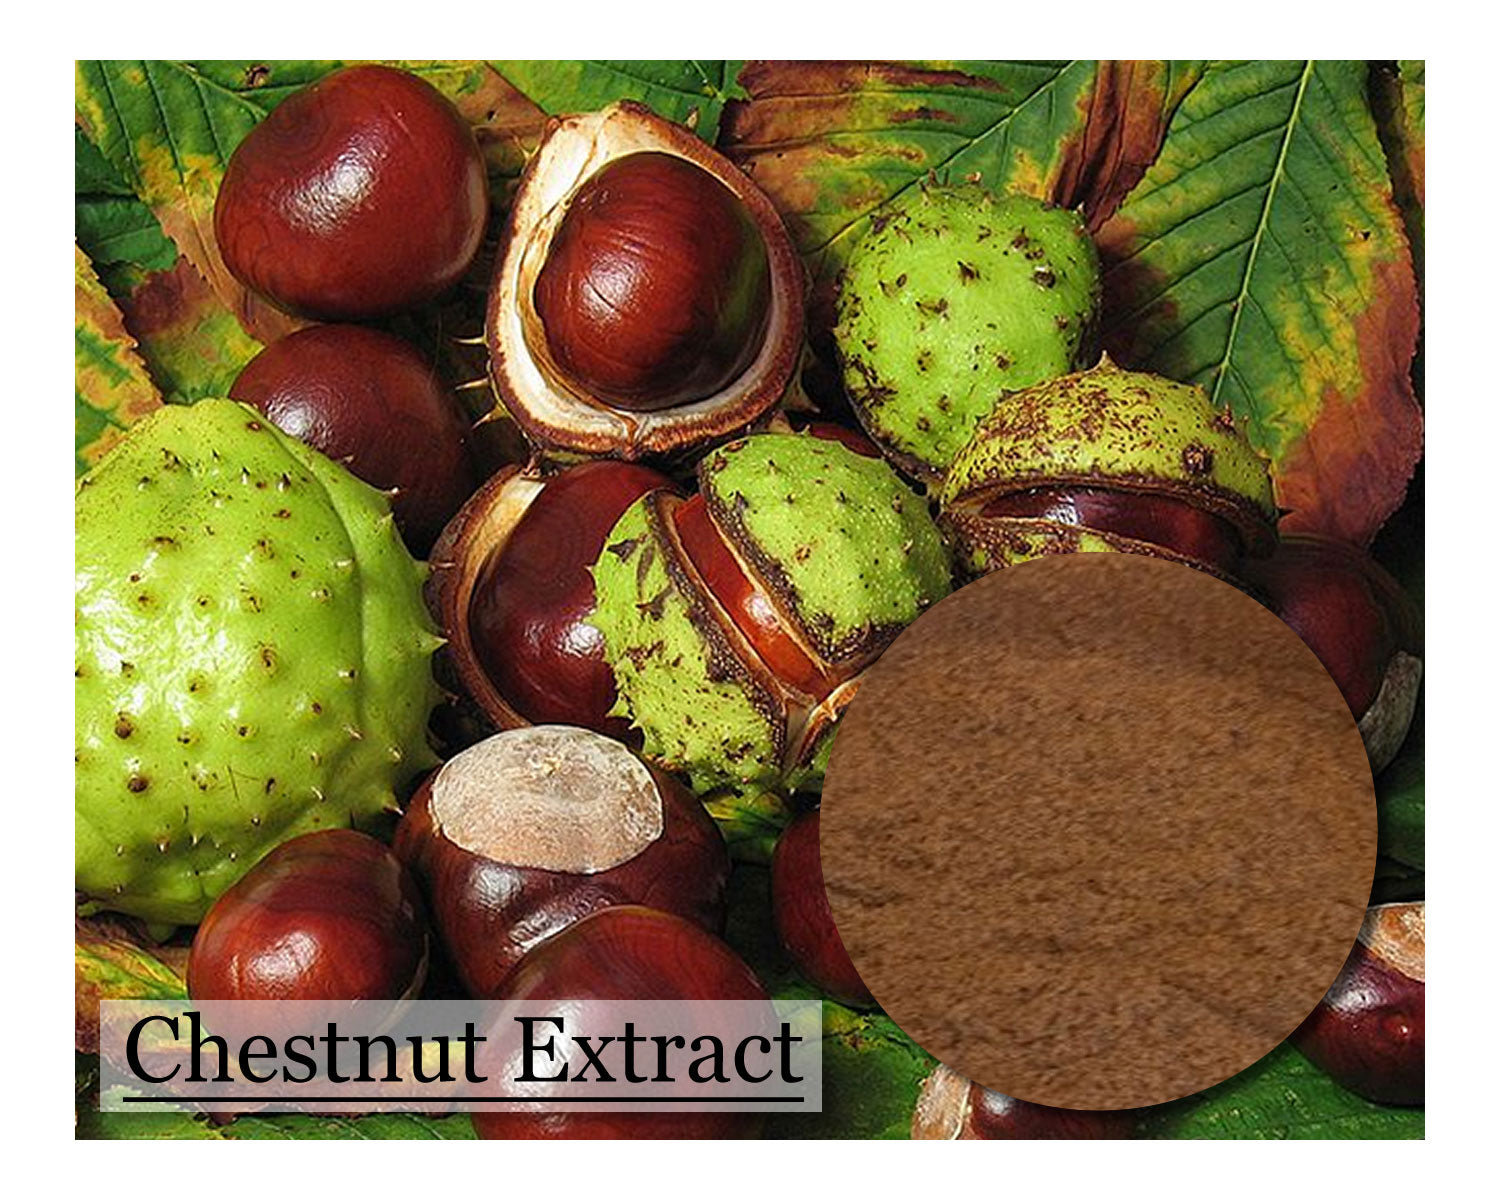 Chestnut Extract 1oz